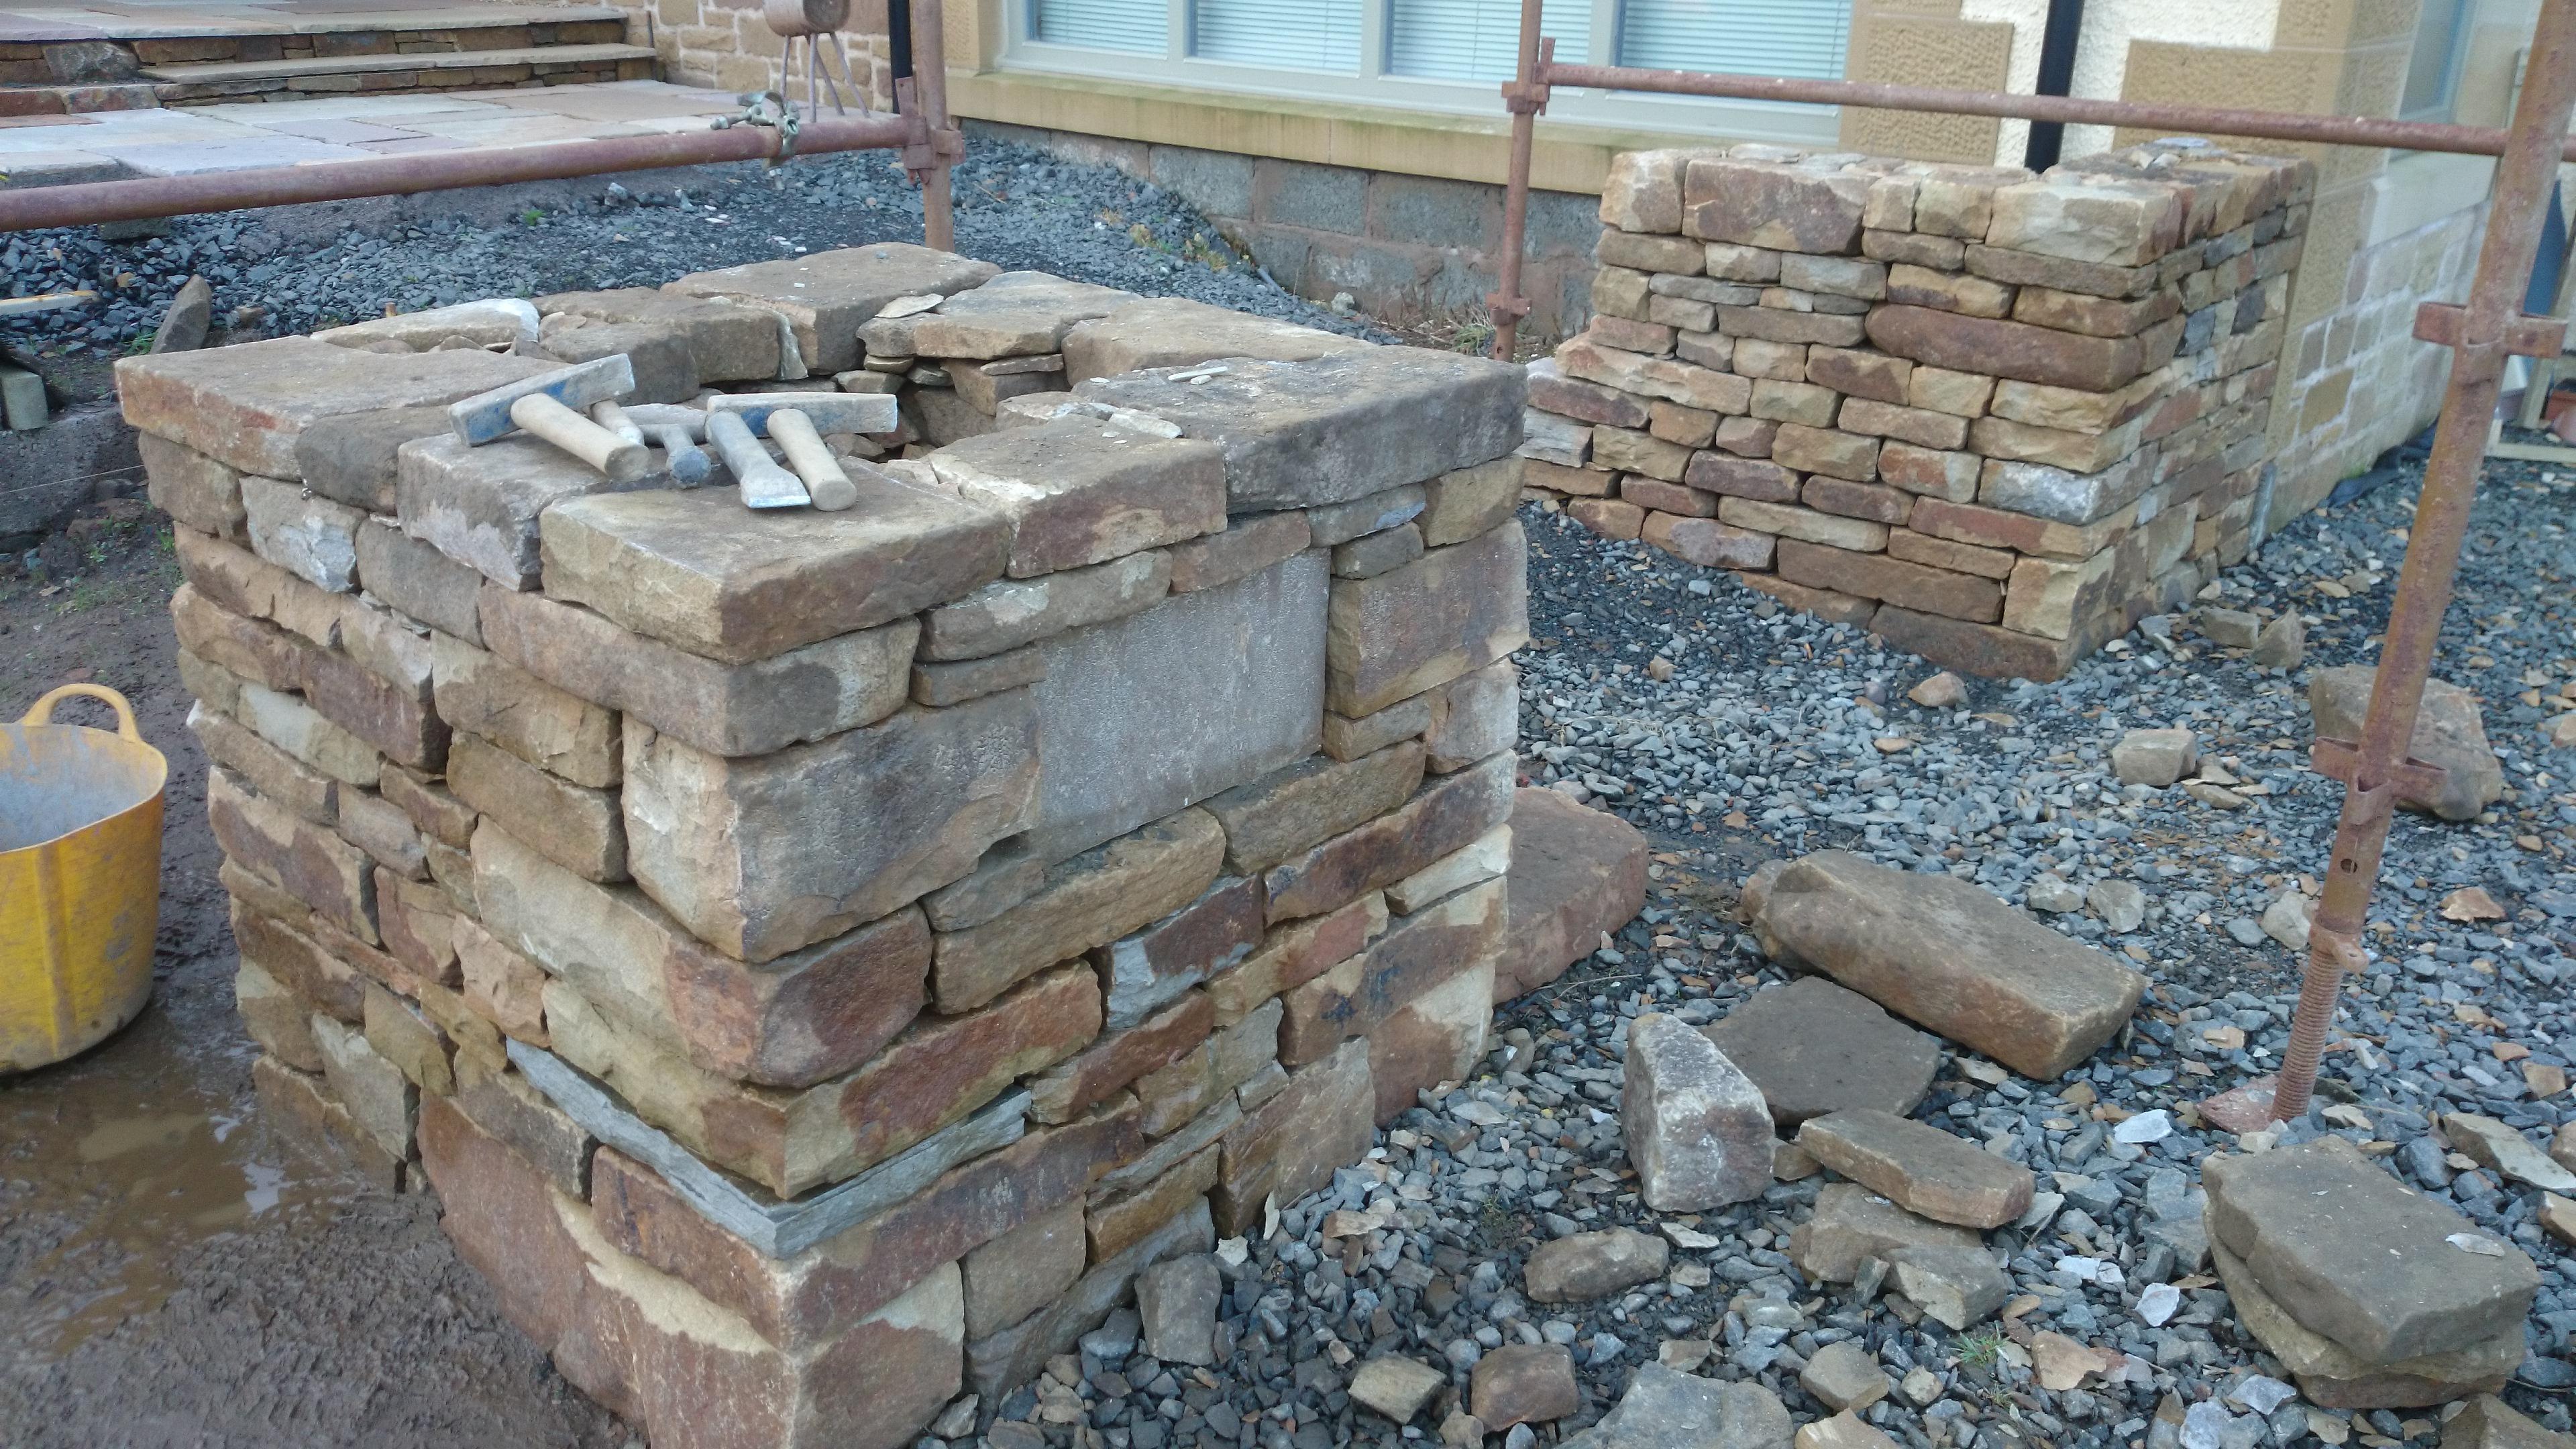 Early days - the square dry stone planter